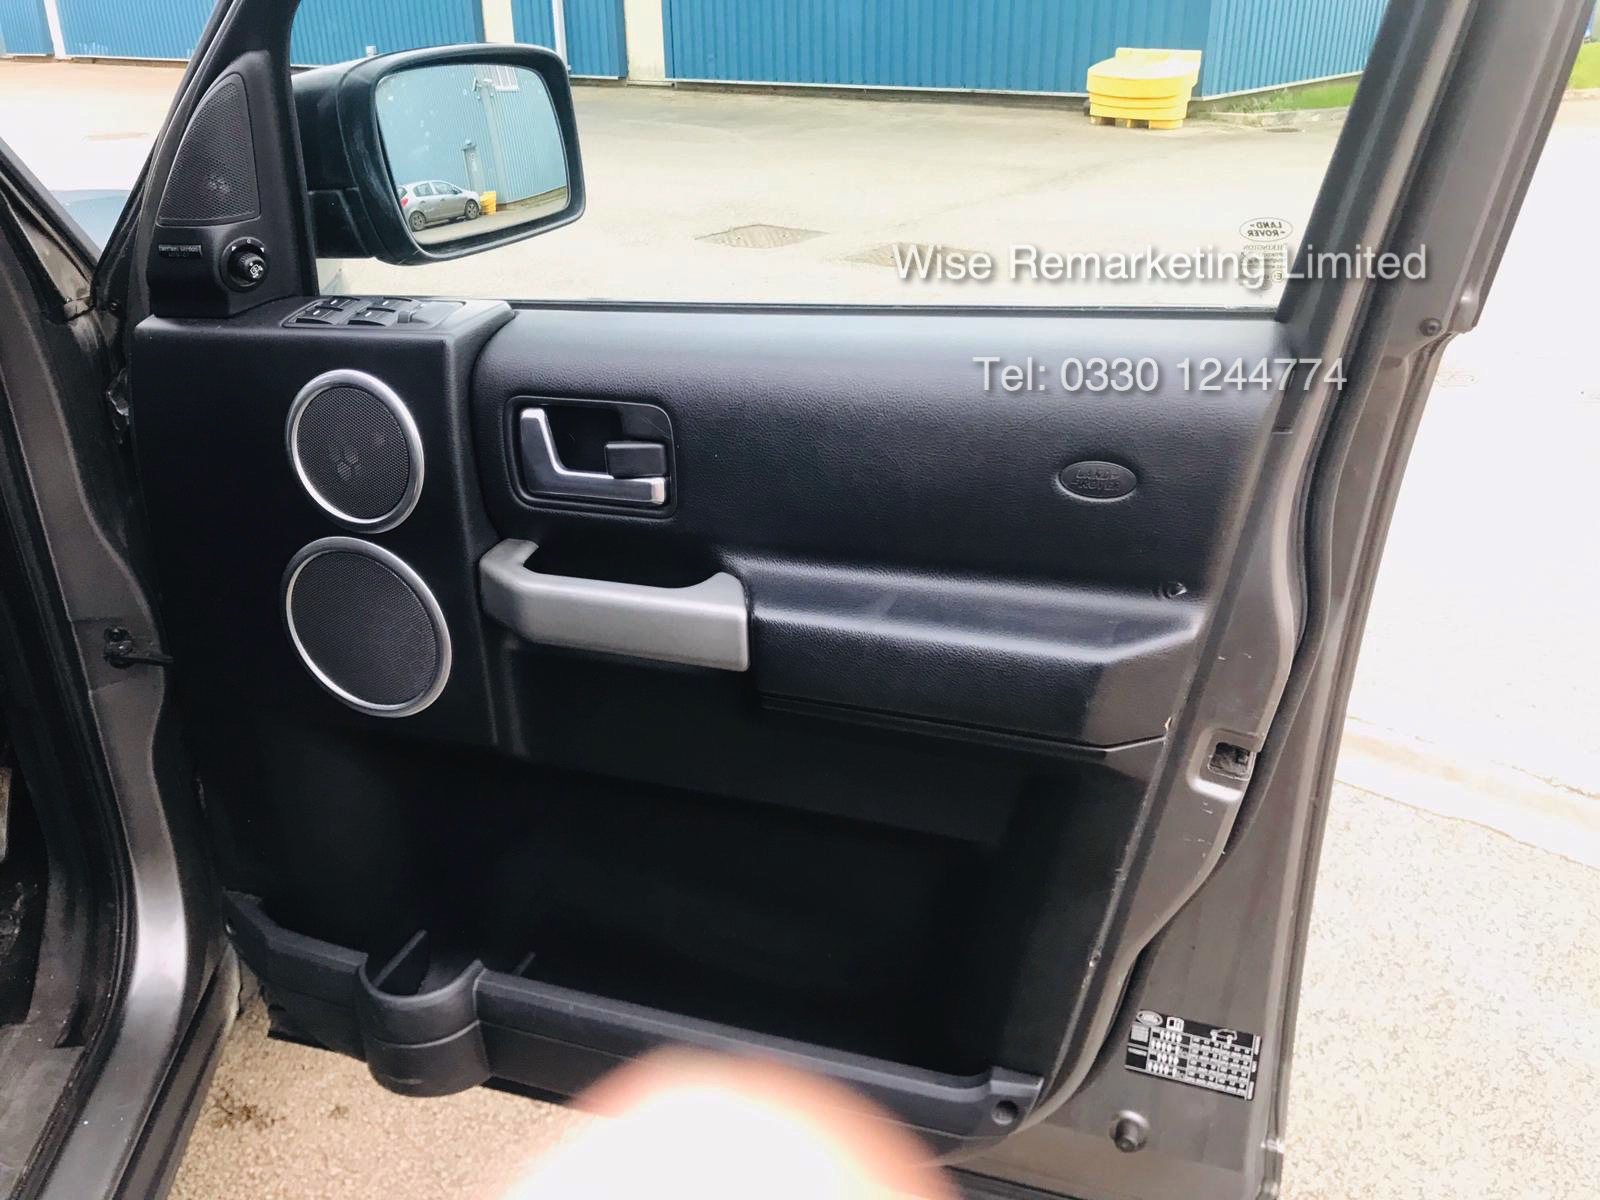 Land Rover Discovery SE 2.7 TDV6 Automatic - 2008 08 Reg - 7 seats - 1 Keeper - Service History - Image 18 of 22